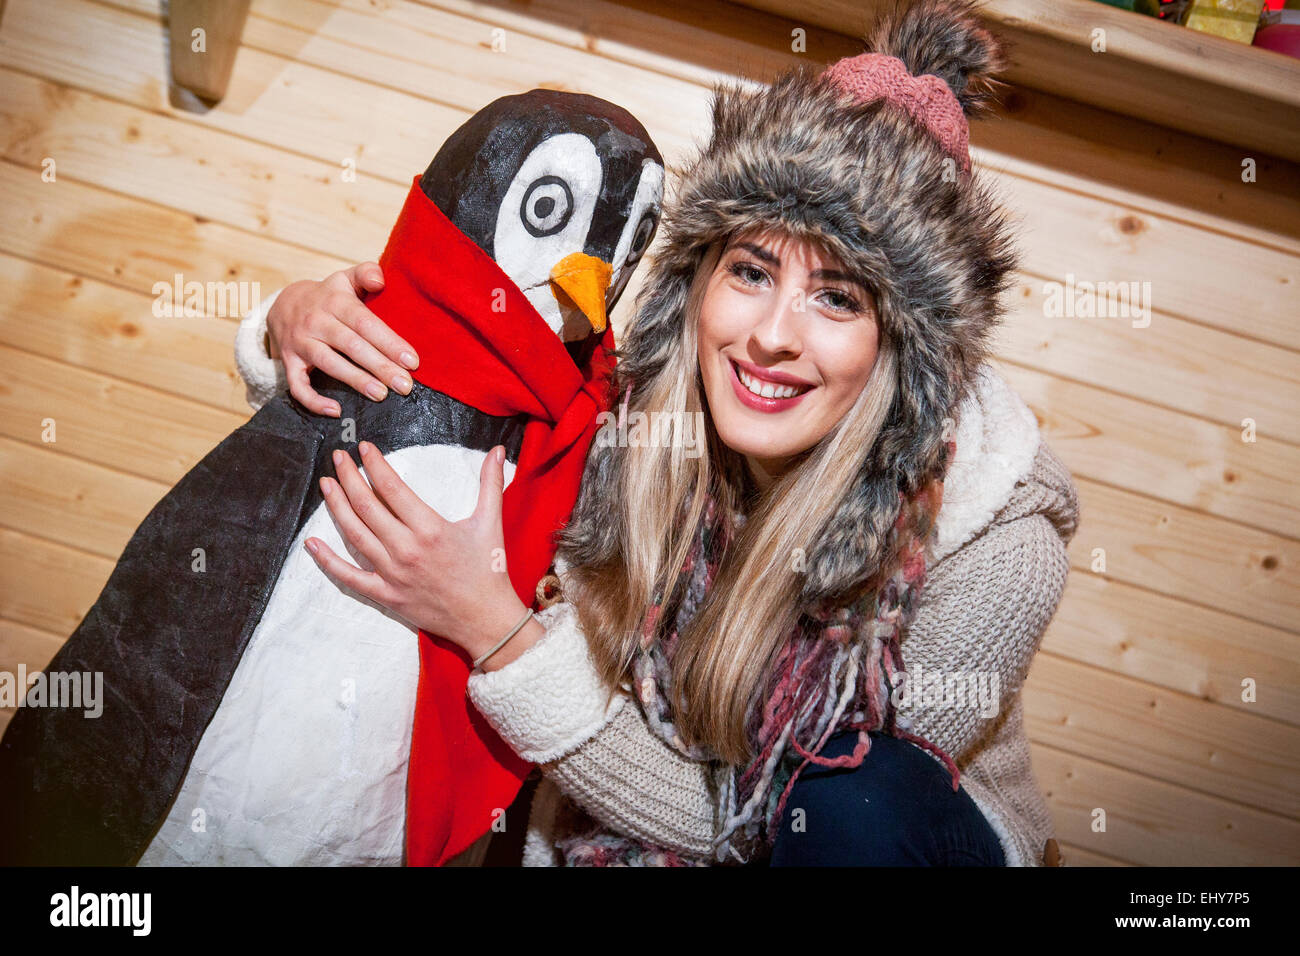 Young woman posing with penguin figurine - Stock Image